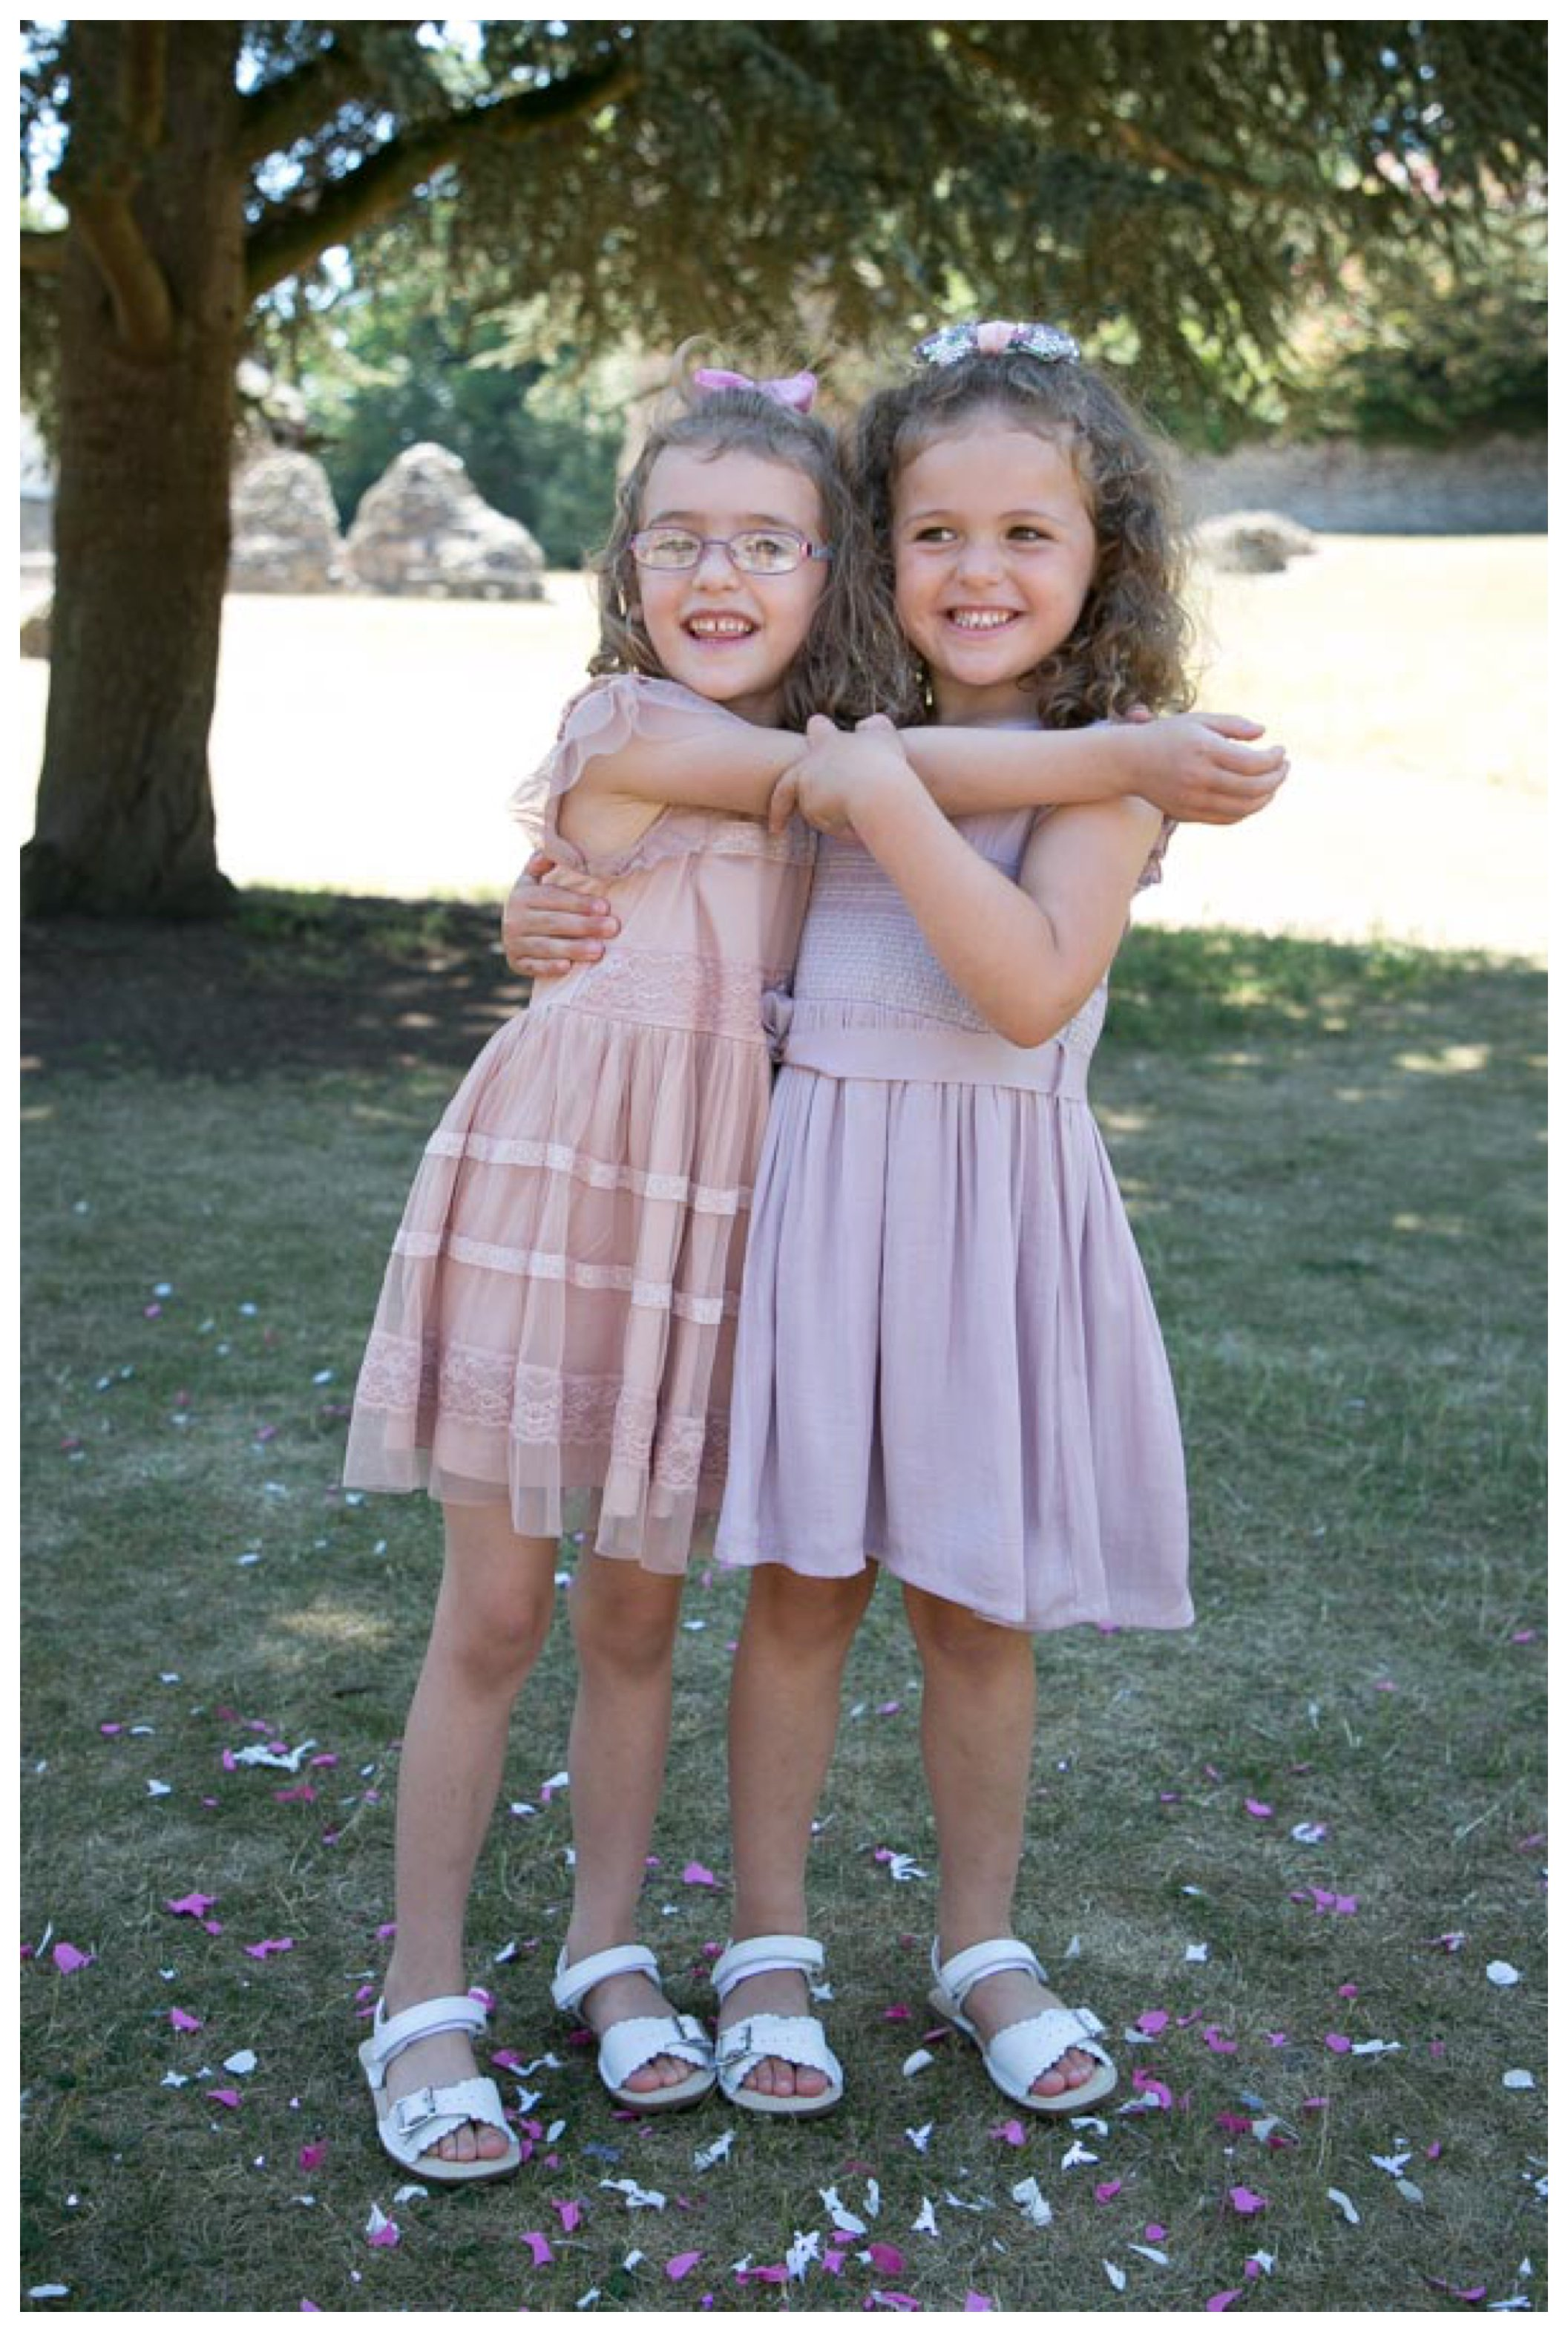 twin girls in flower girl pastel coloured dresses at parents wedding